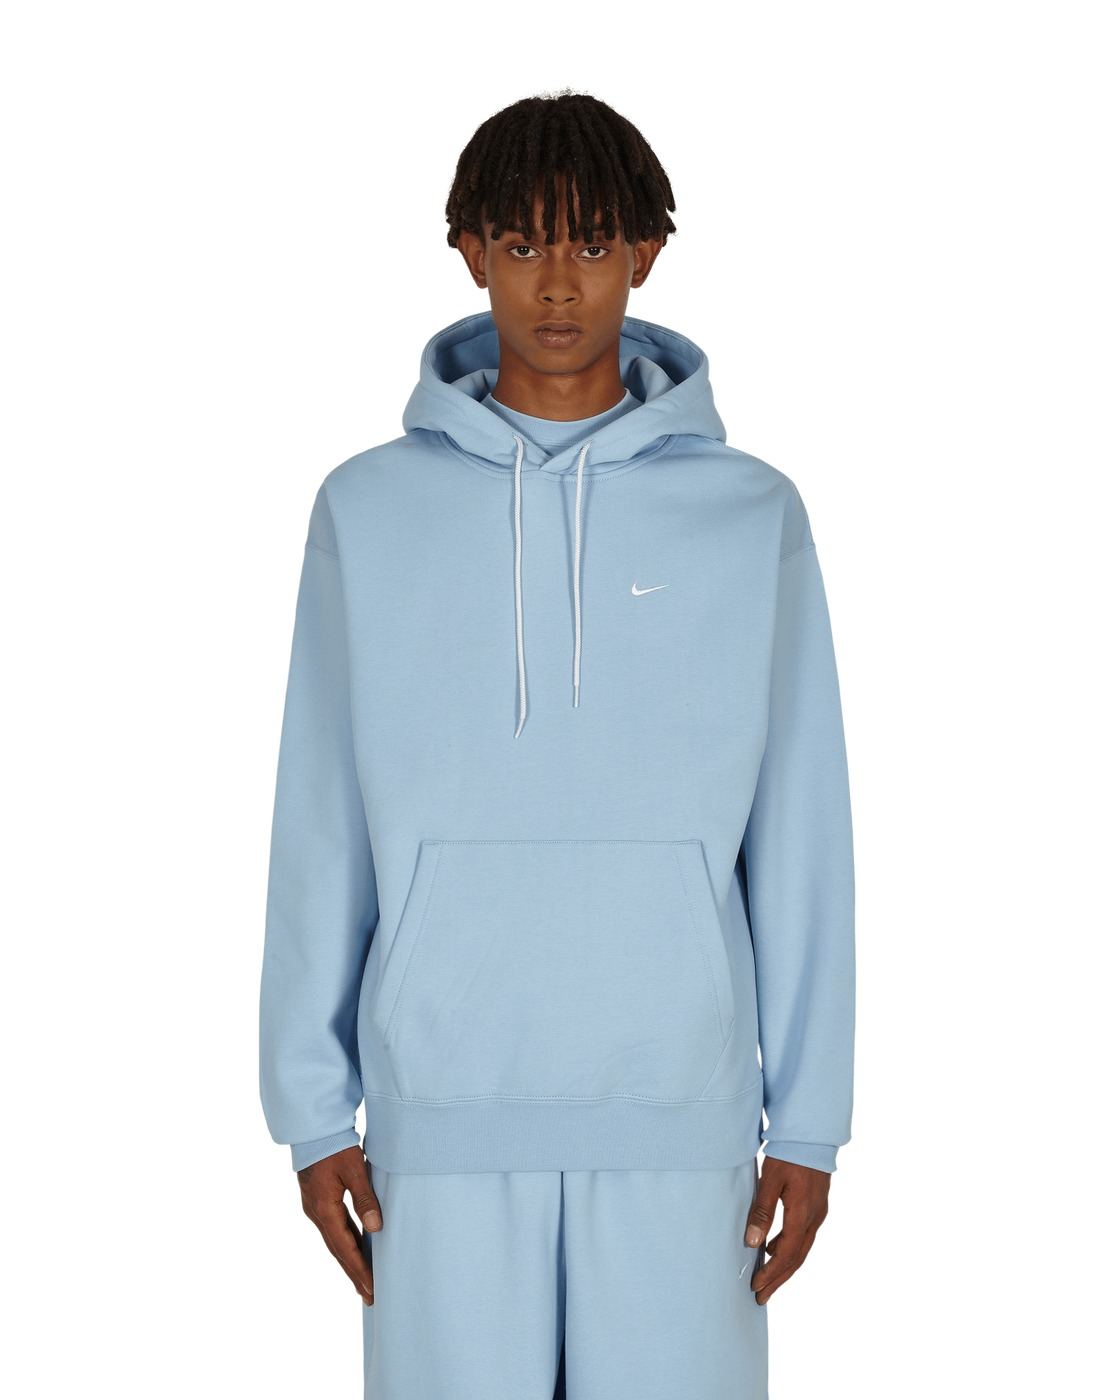 Nike Special Project Logo Hooded Sweatshirt Psychic Blue/White